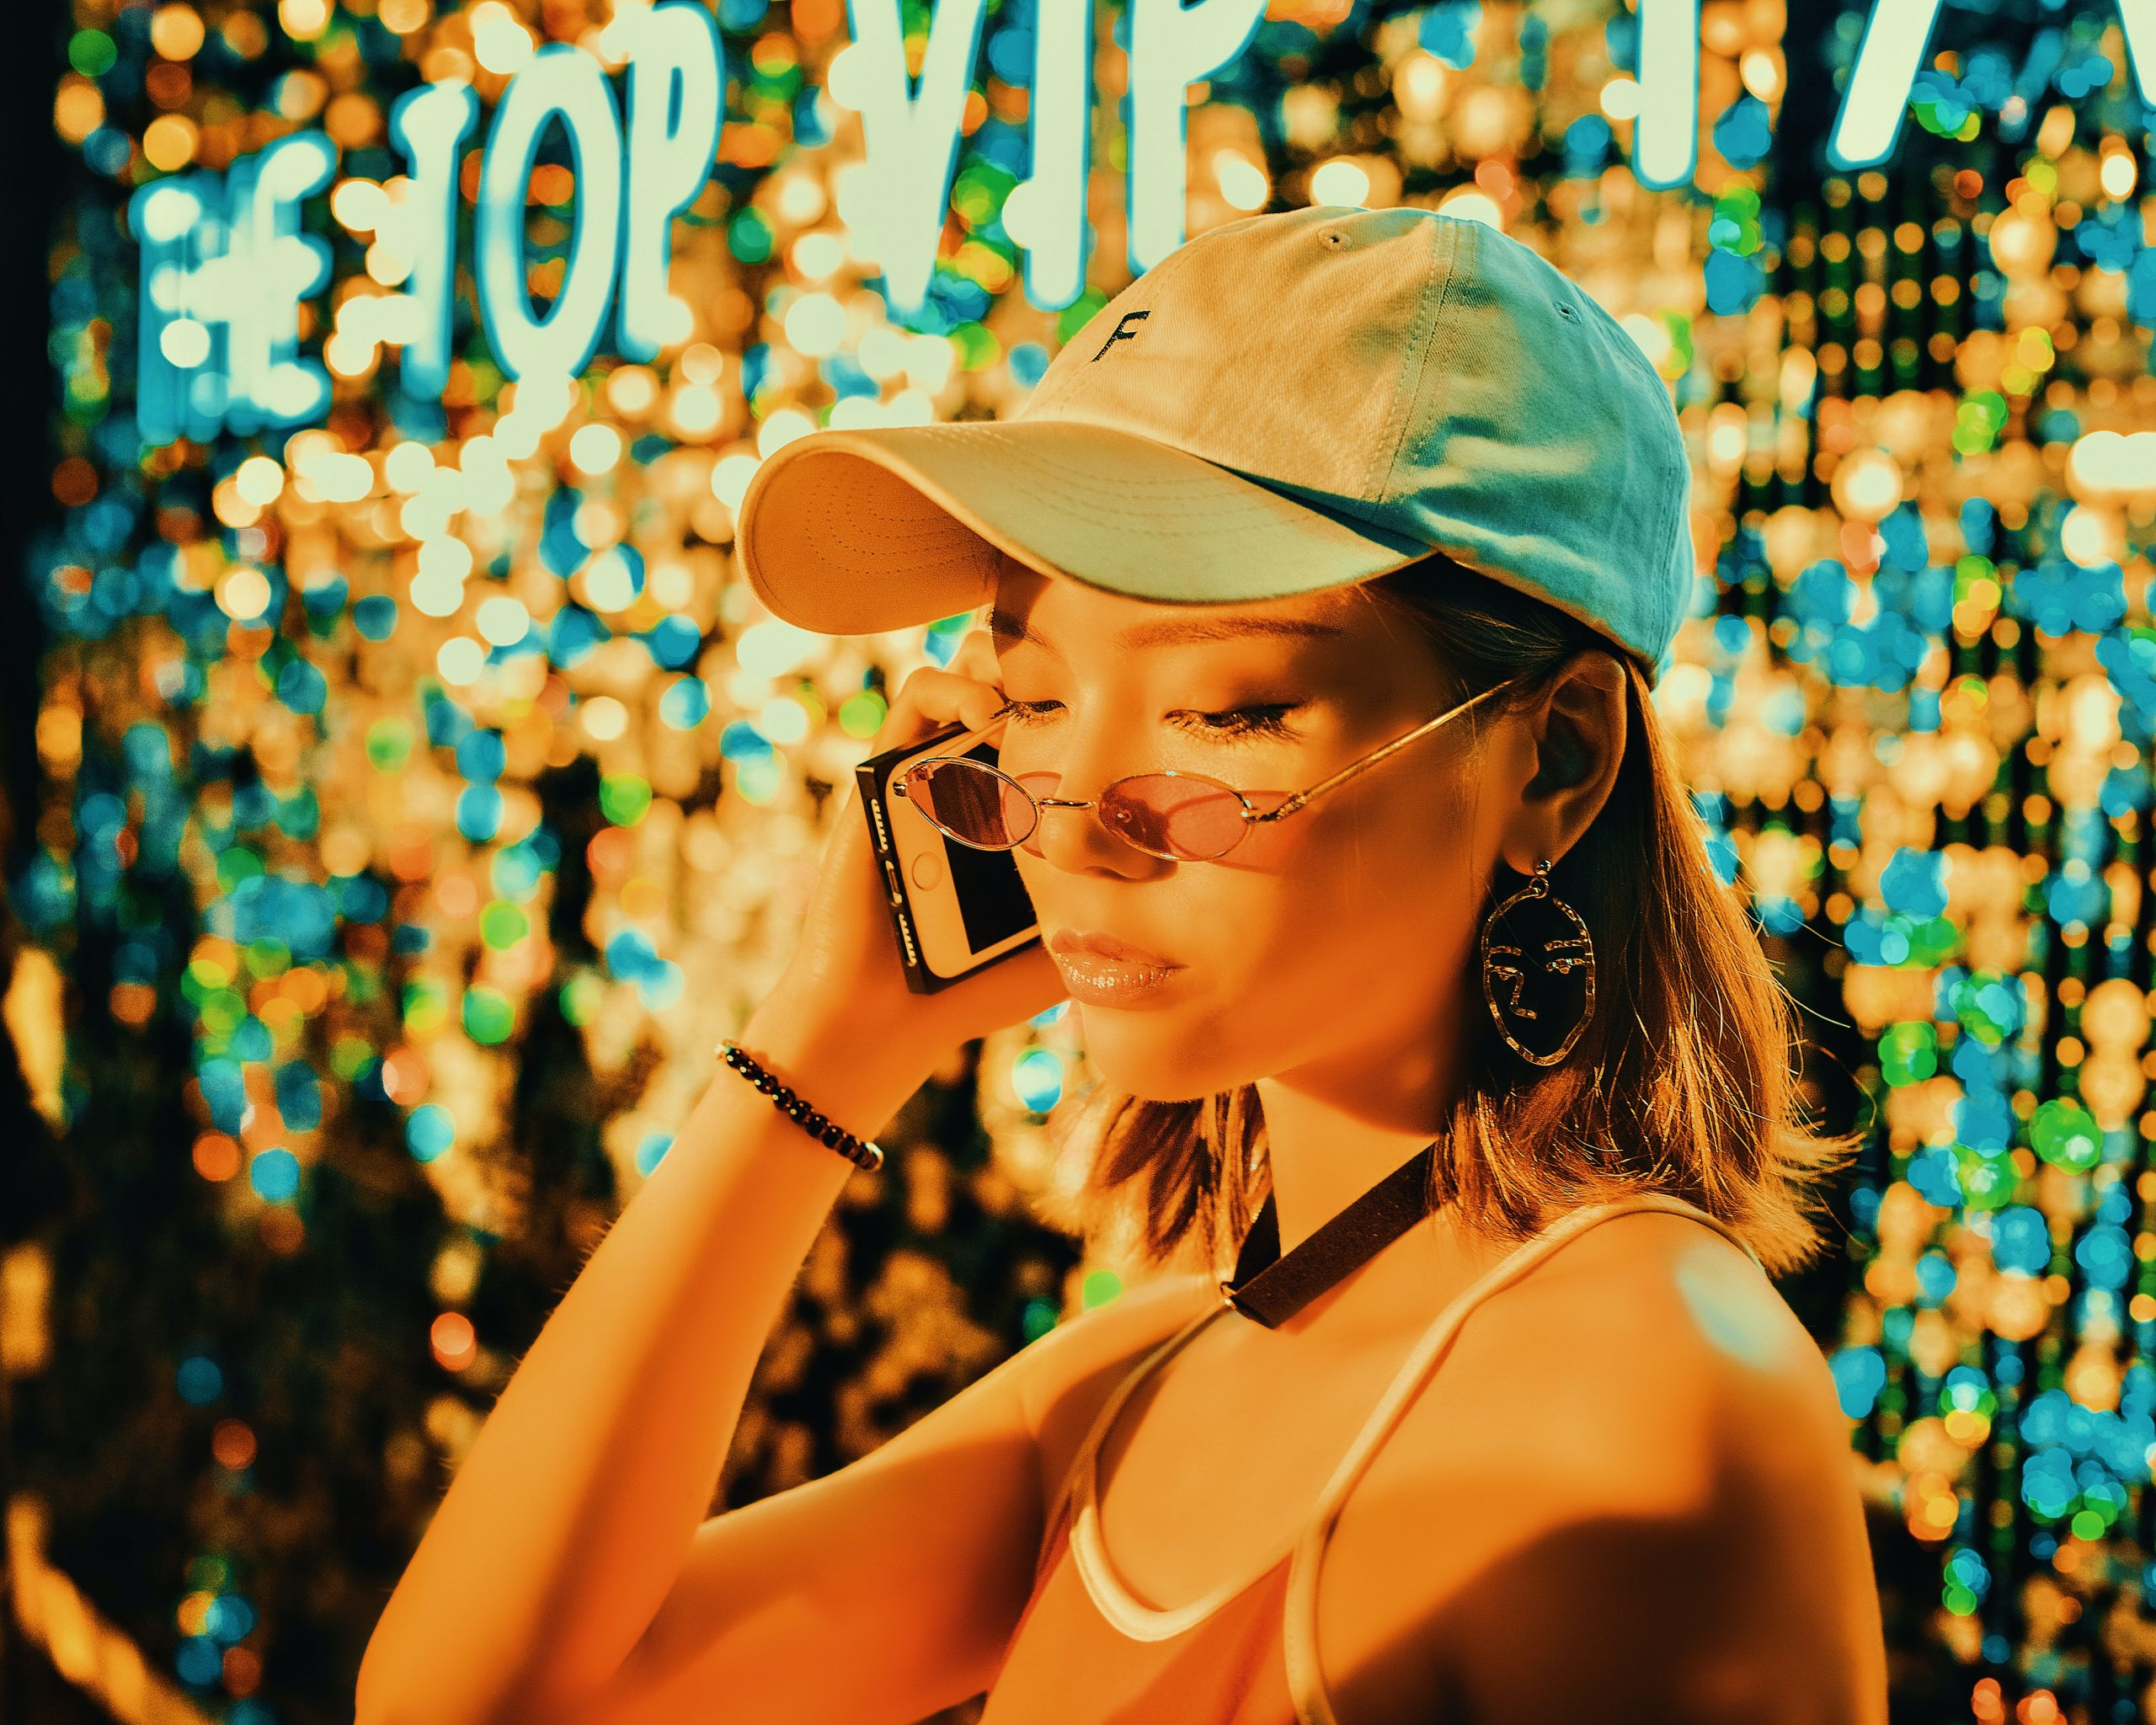 I took this picture in front of a background panel with colored sequins. The light on the scene is orange and the effect is very good. I felt so good that I immediately asked the model to pose and film it.